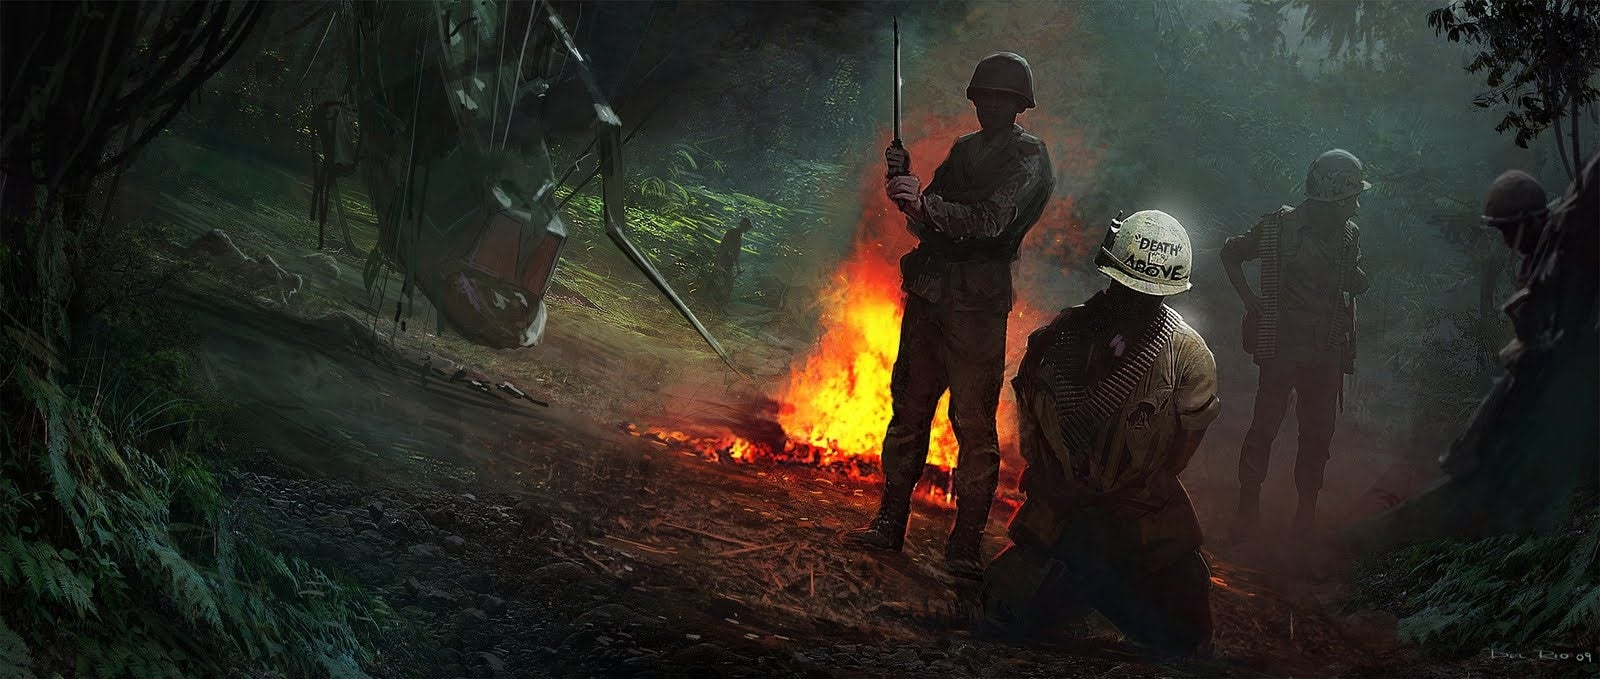 What A Call of Duty In Vietnam Could've Looked Like